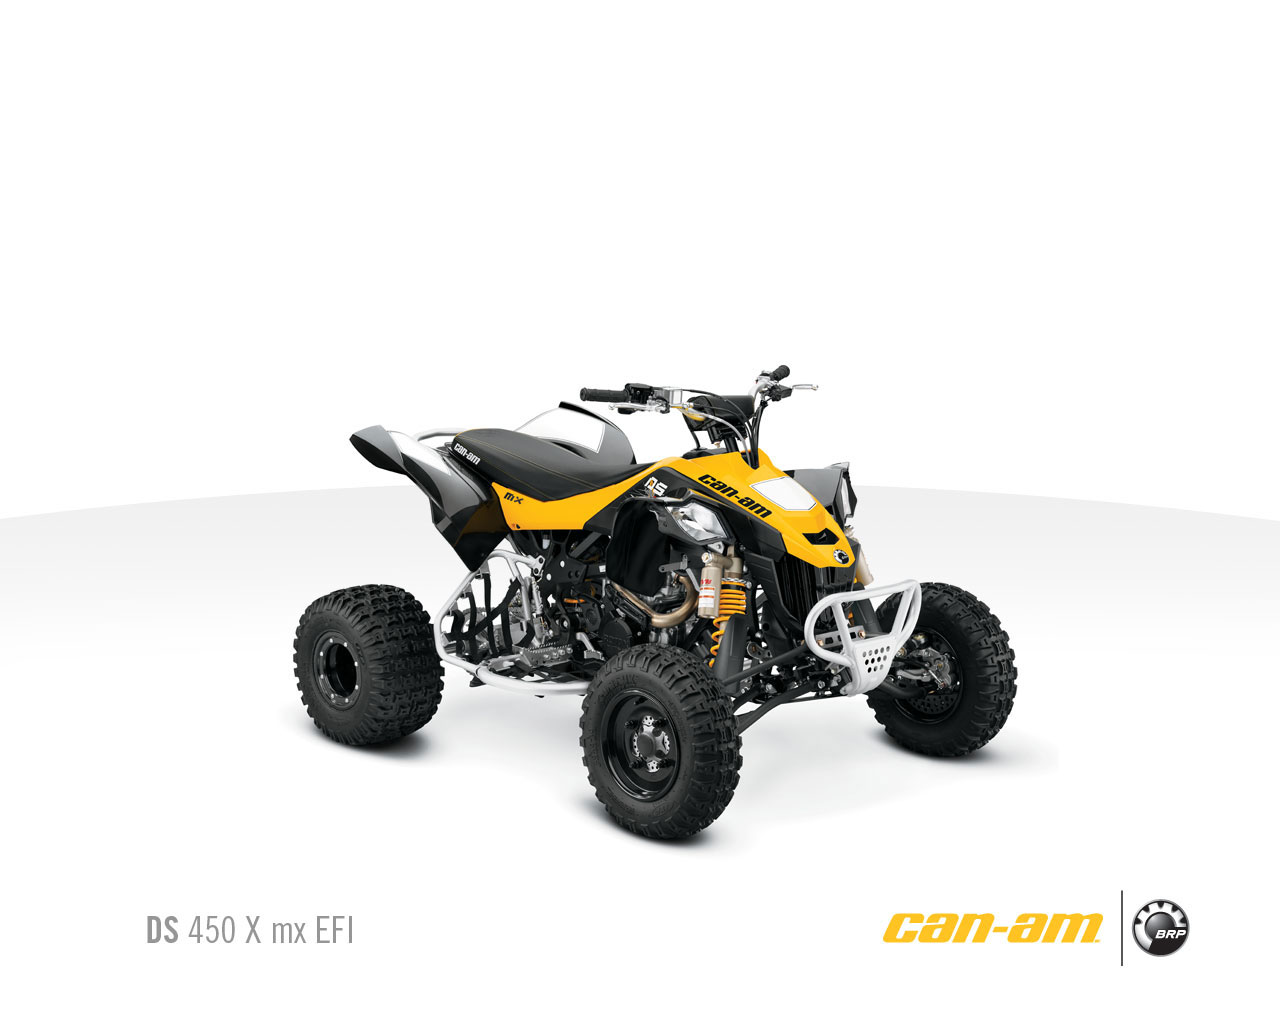 CAN AM BRPDS450XMX 3696_1 can am brp ds 450 x mx specs 2010, 2011 autoevolution ds 450 wiring diagram at bakdesigns.co